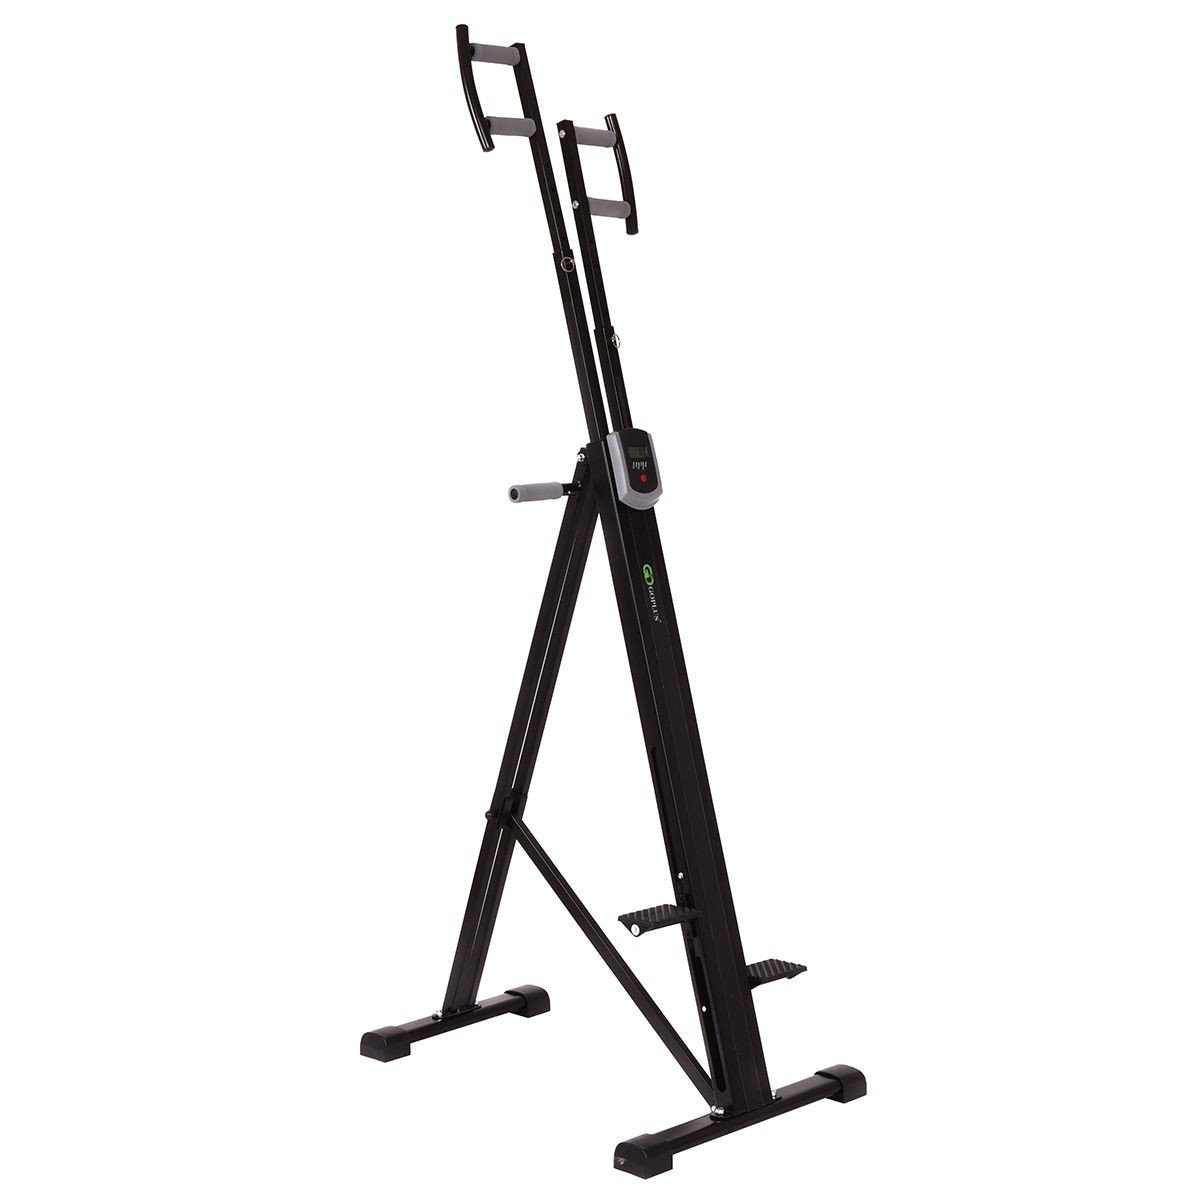 Foldable Vertical Climber Machine Exercise by Apontus